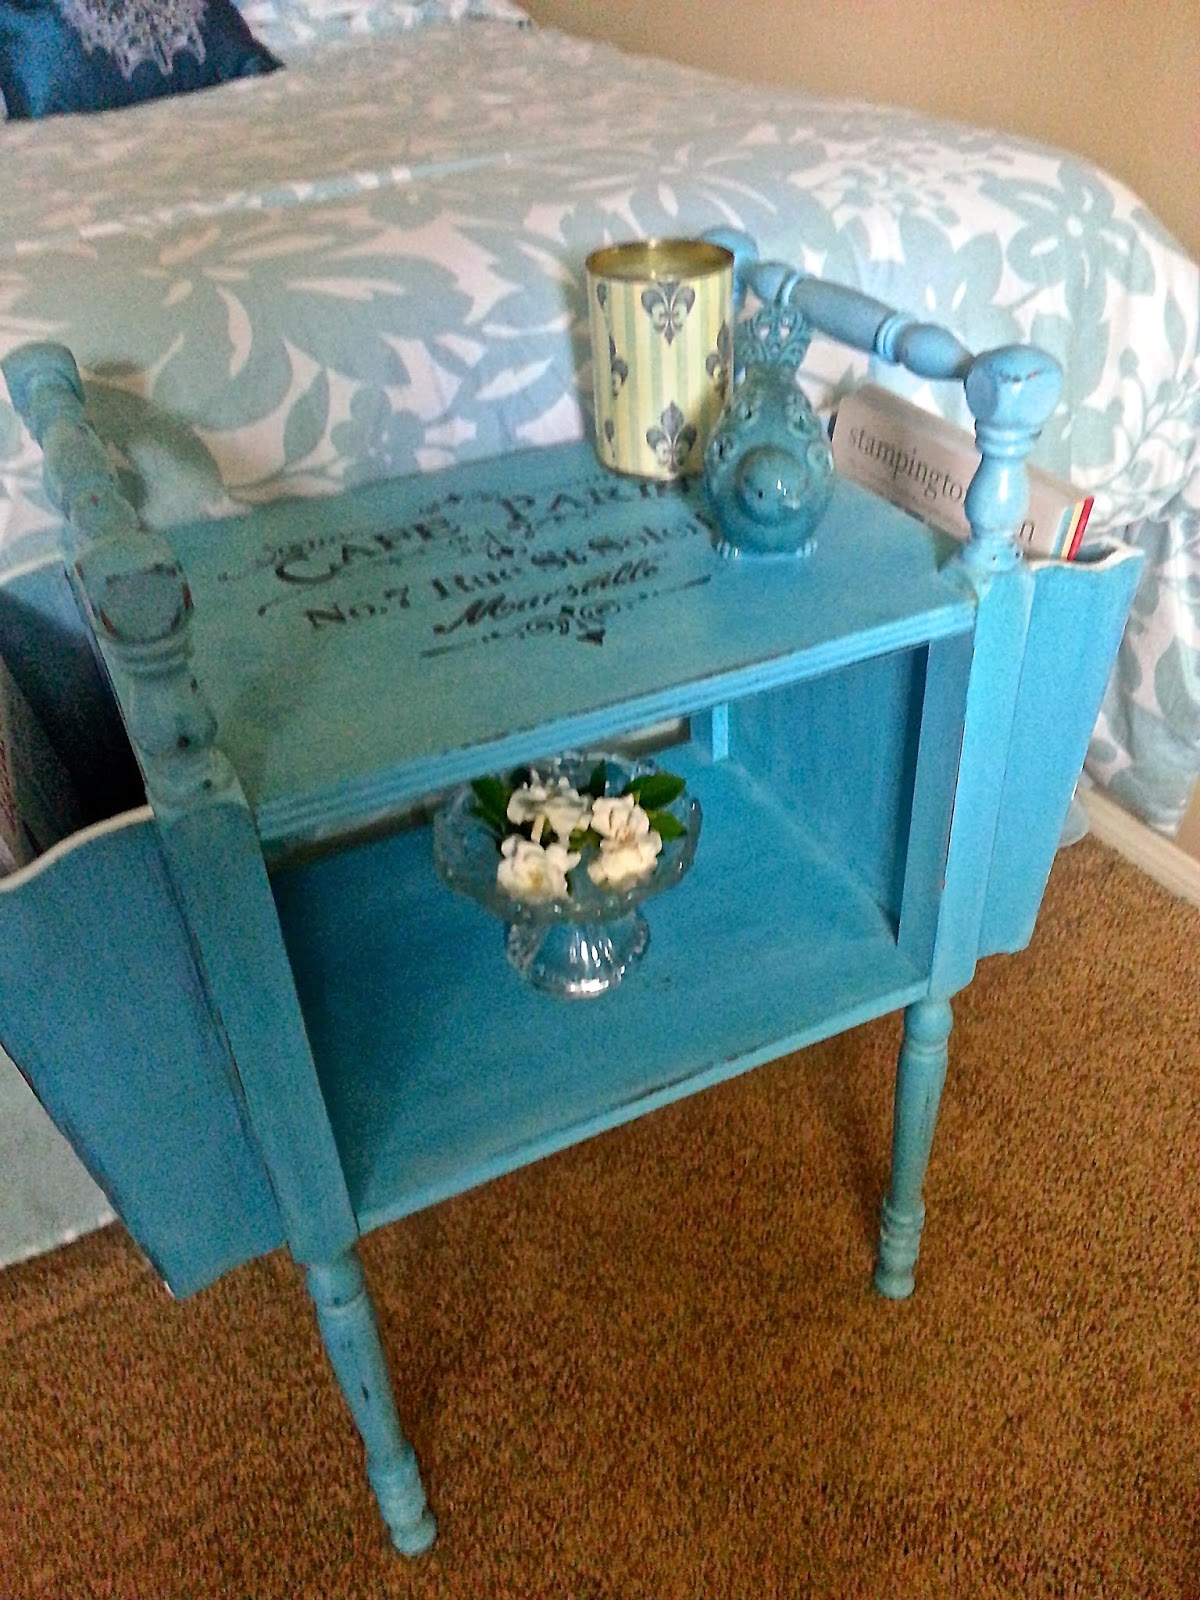 THE ALTERED FLEA Vintage Magazine Side Table Transformed with